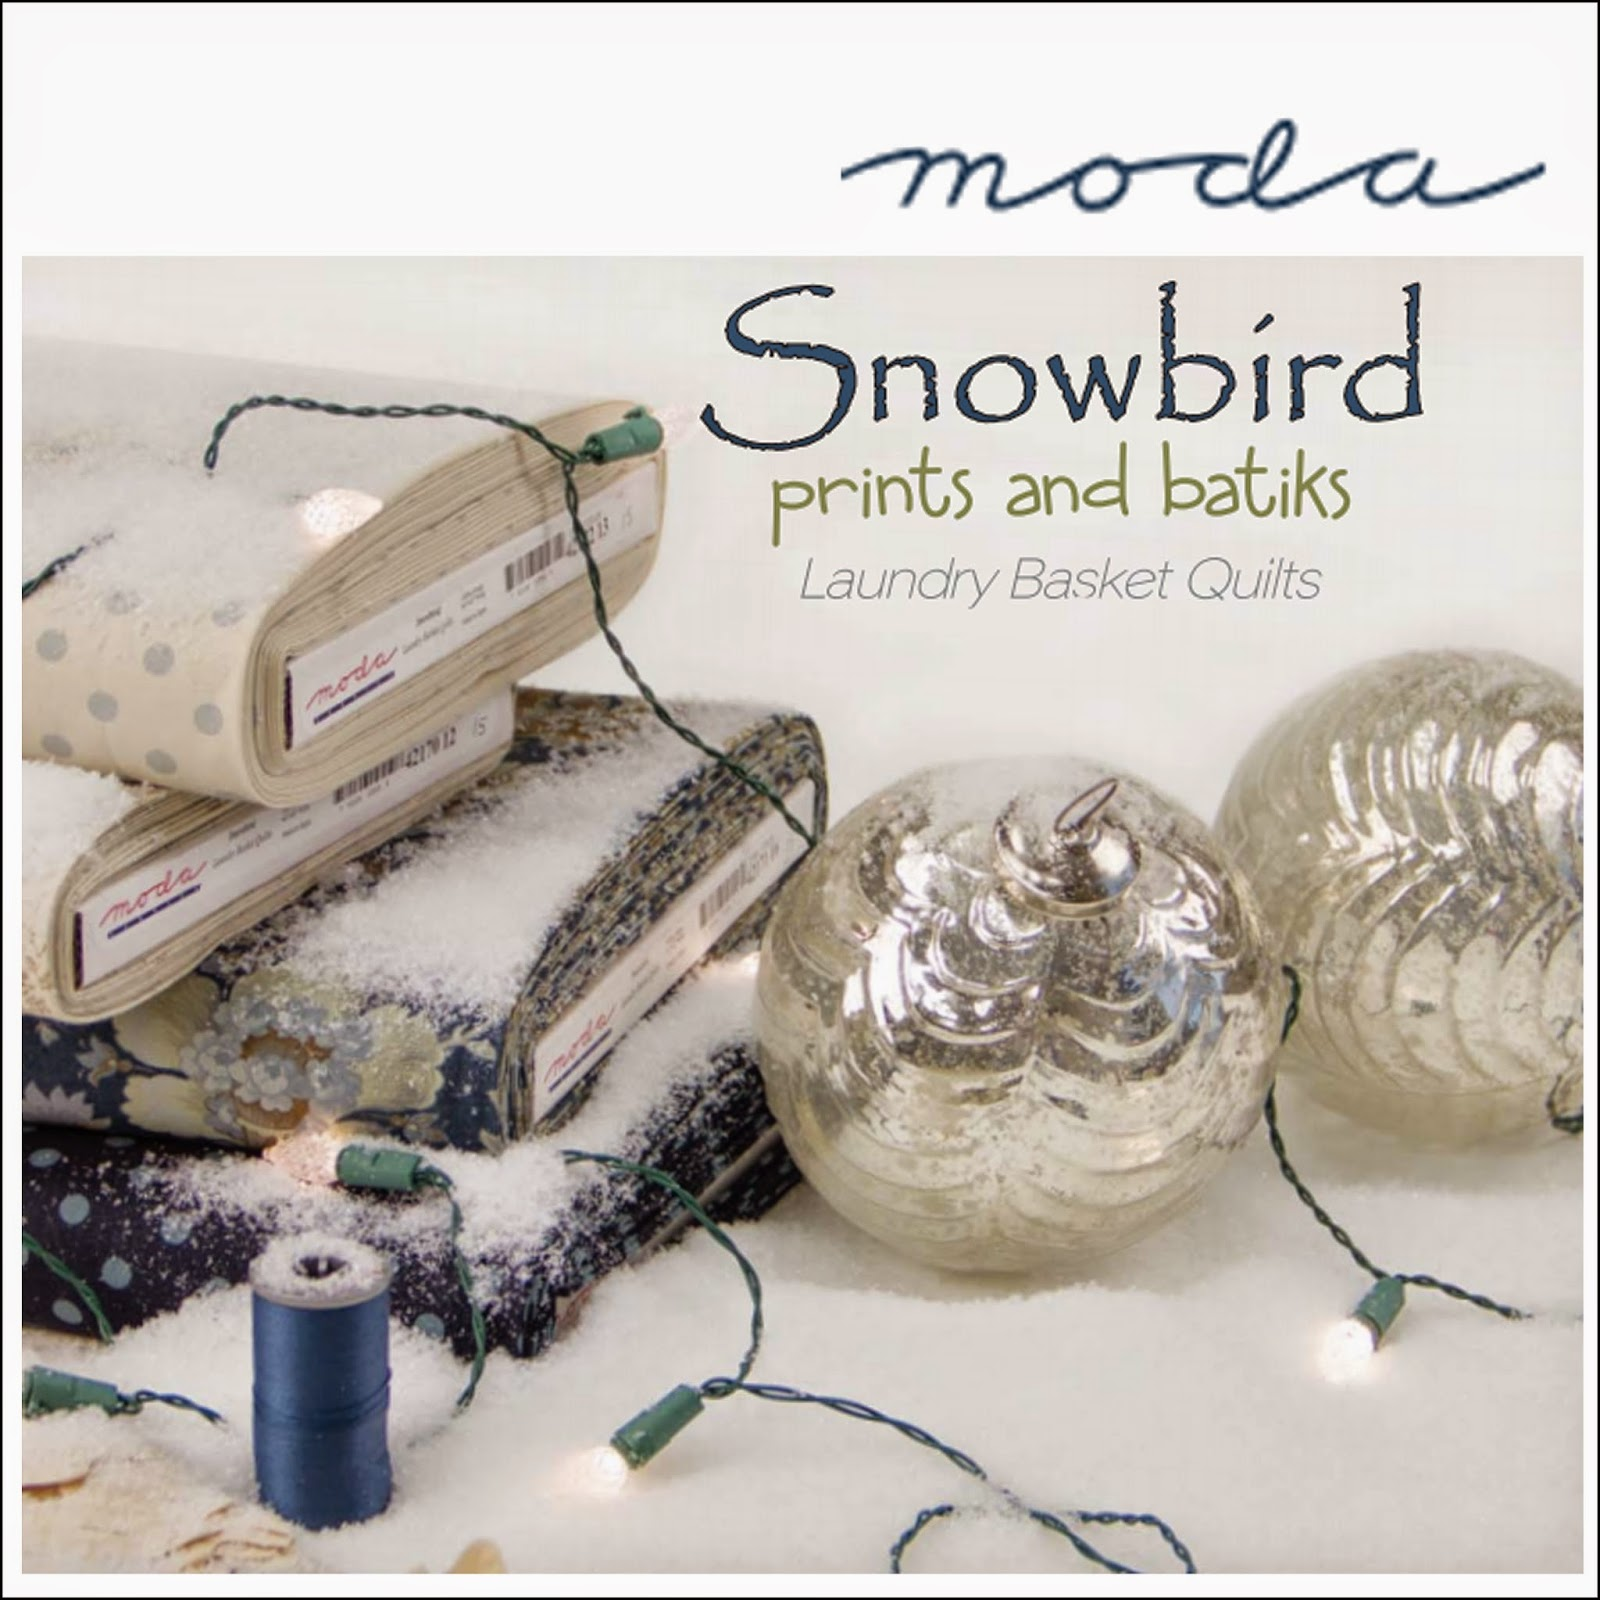 Moda SNOWBIRD Prints and Batiks Christmas Quilt Fabric by Laundry Basket Quilts for Moda Fabrics